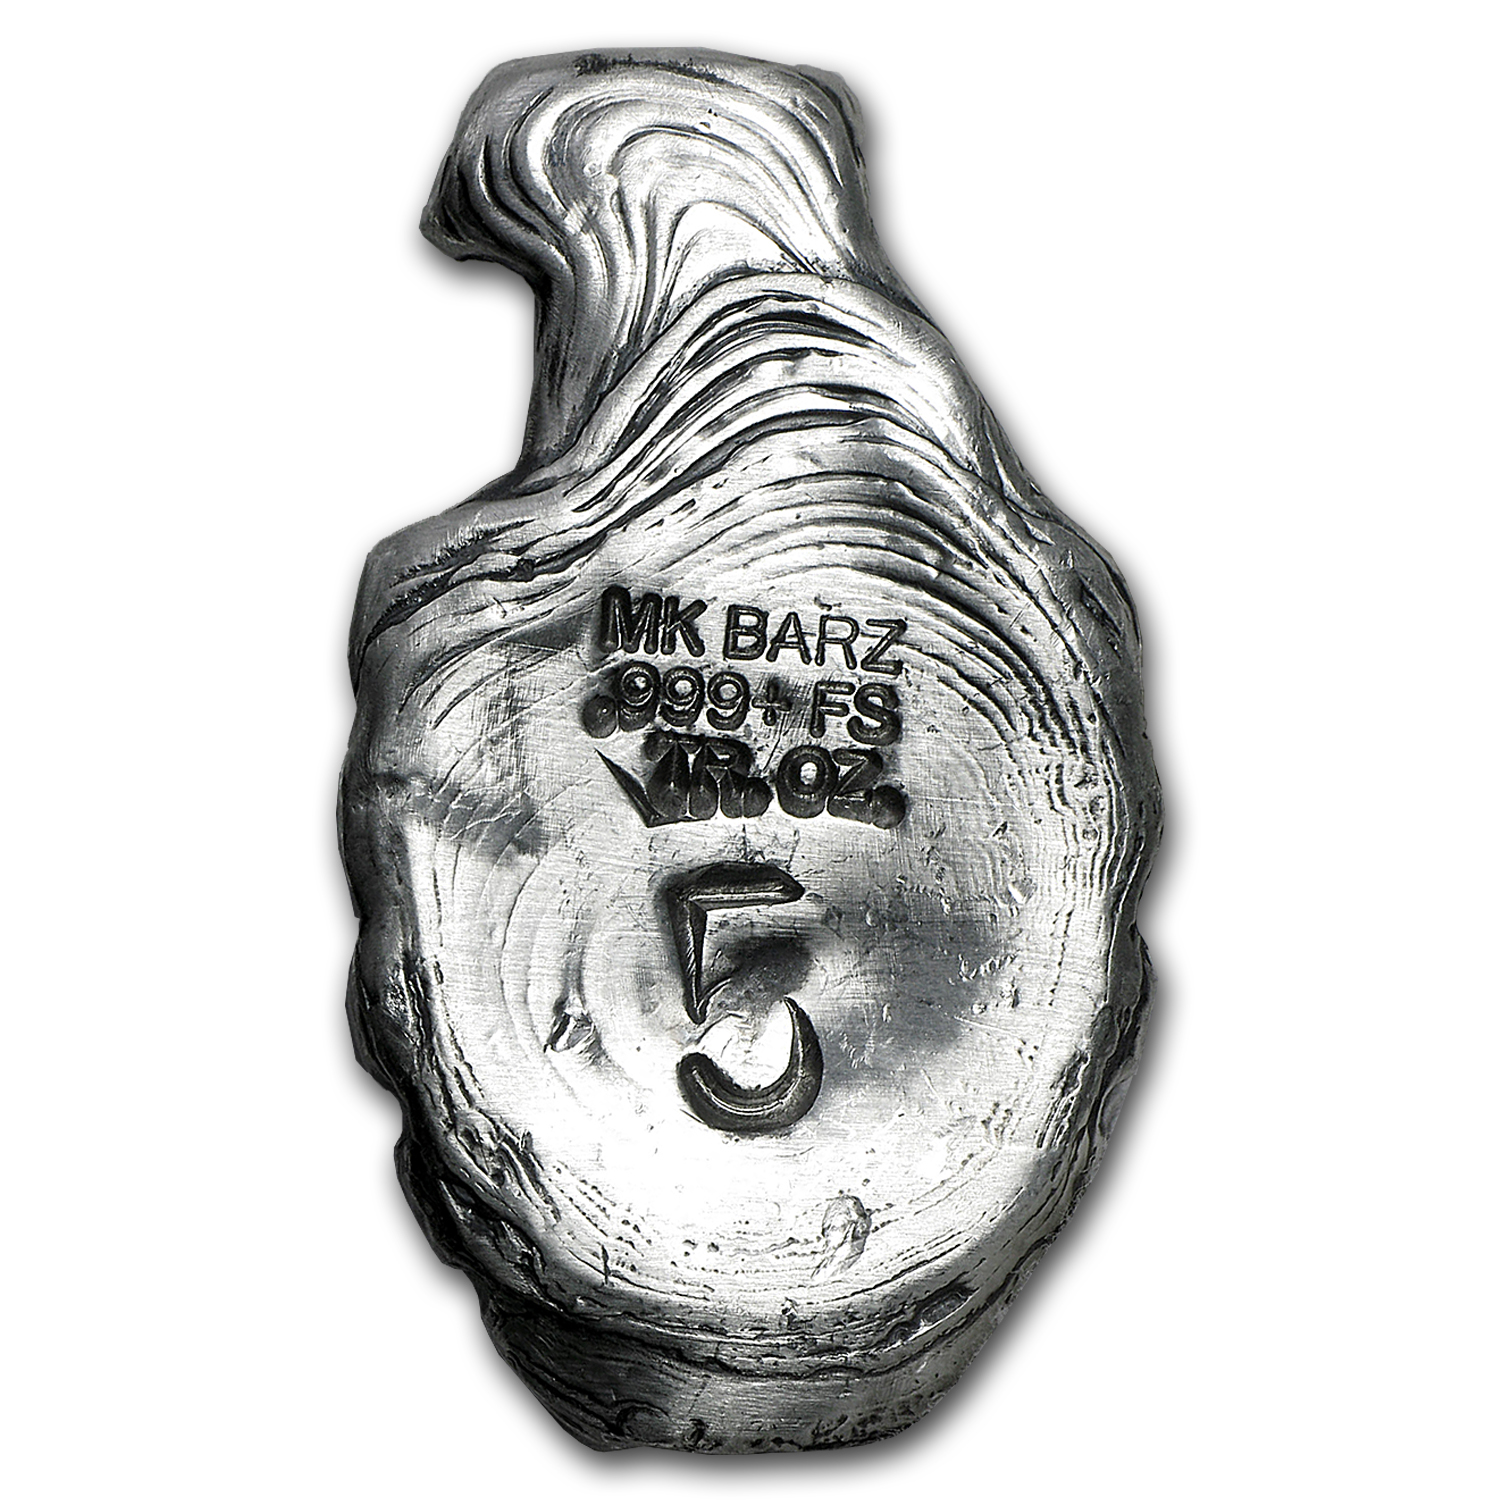 5 oz Silver Hand Grenade - MK Barz & Bullion (Antique Finish)